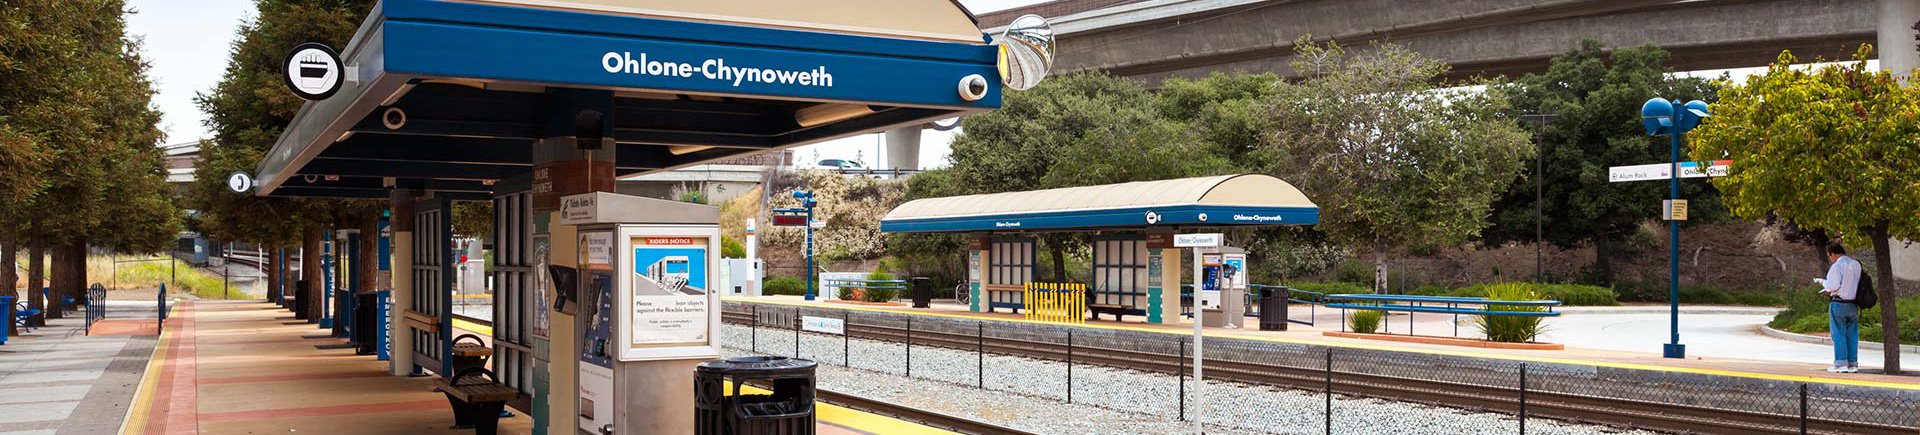 Saybrook Pointe Apartment Homes in San Jose, CA - Ohlone Chynoweth VTA Station Nearby